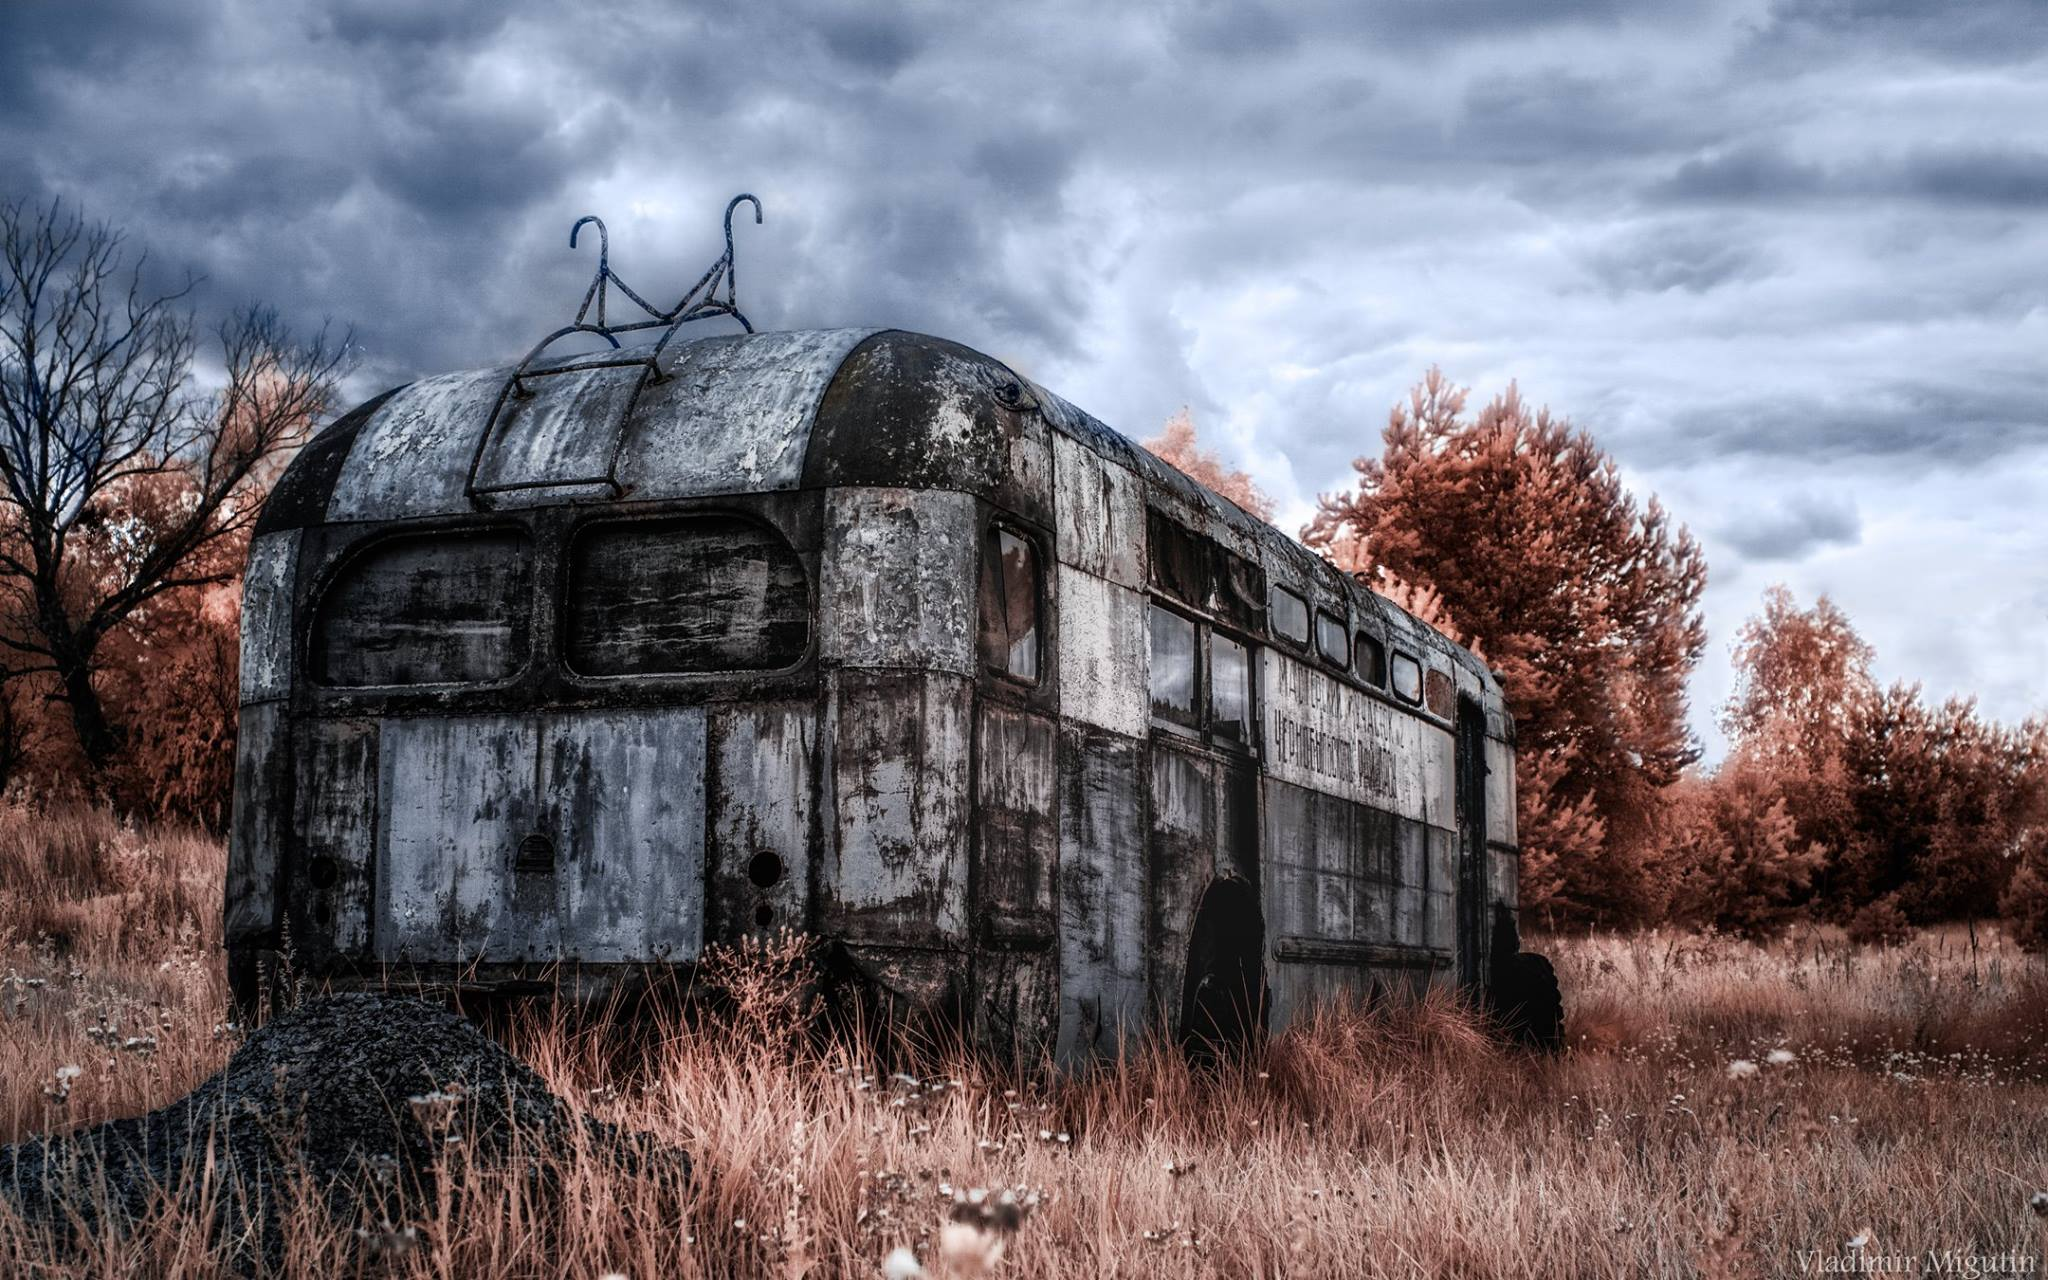 An abandoned vehicle left rusting.